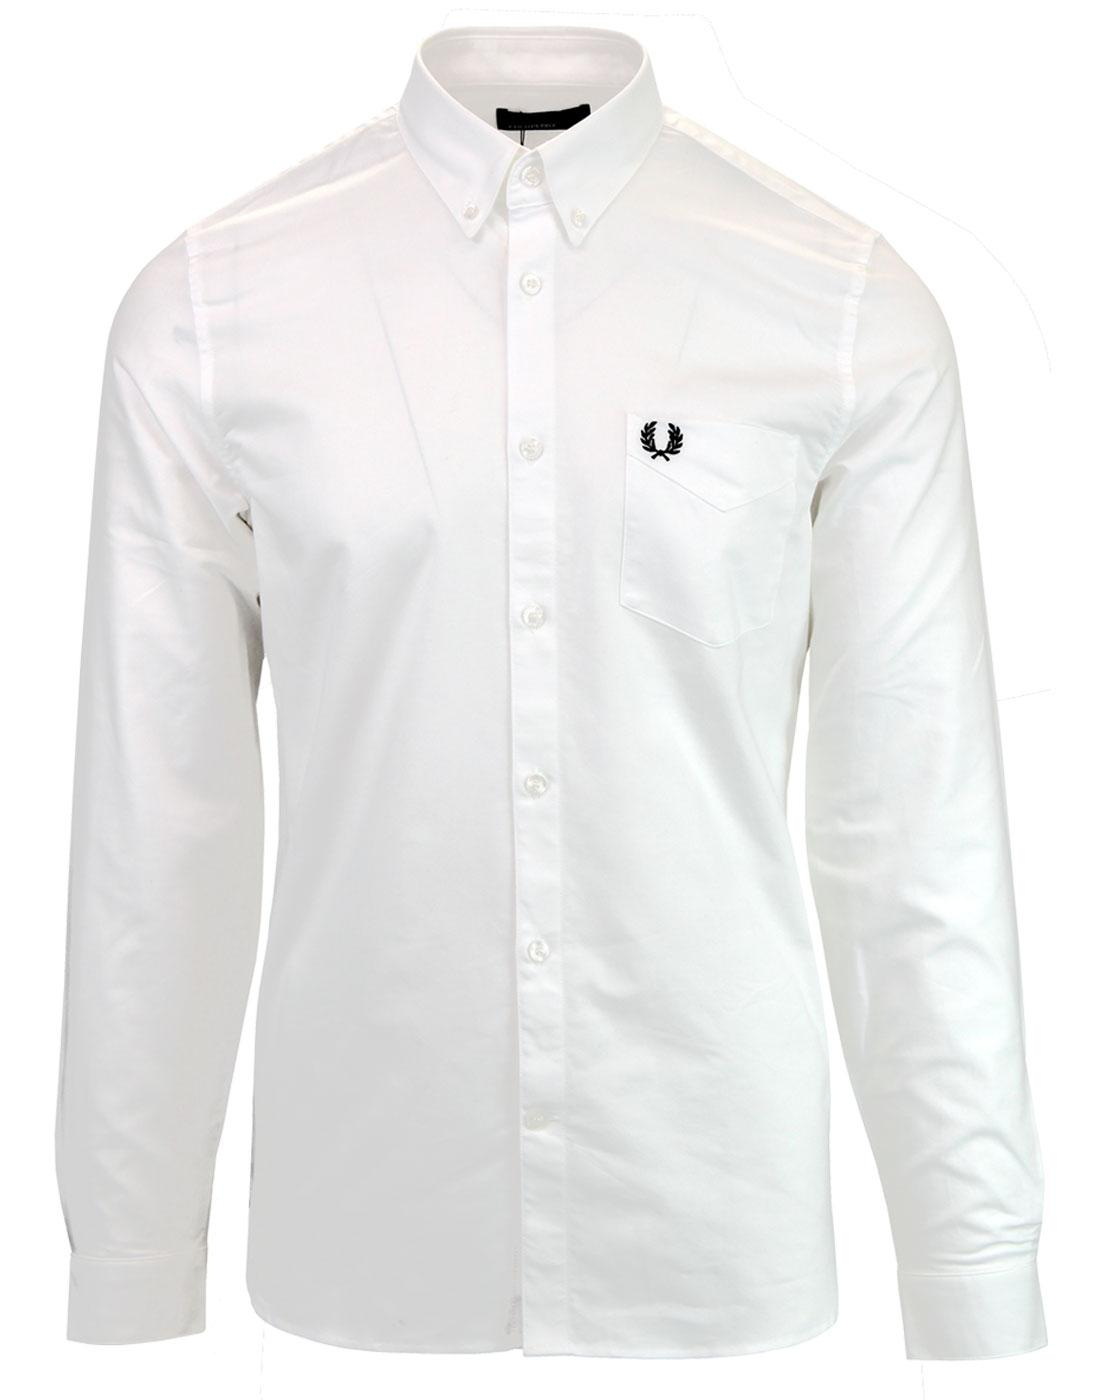 M3551 FRED PERRY OXFORD SHIRT WHITE